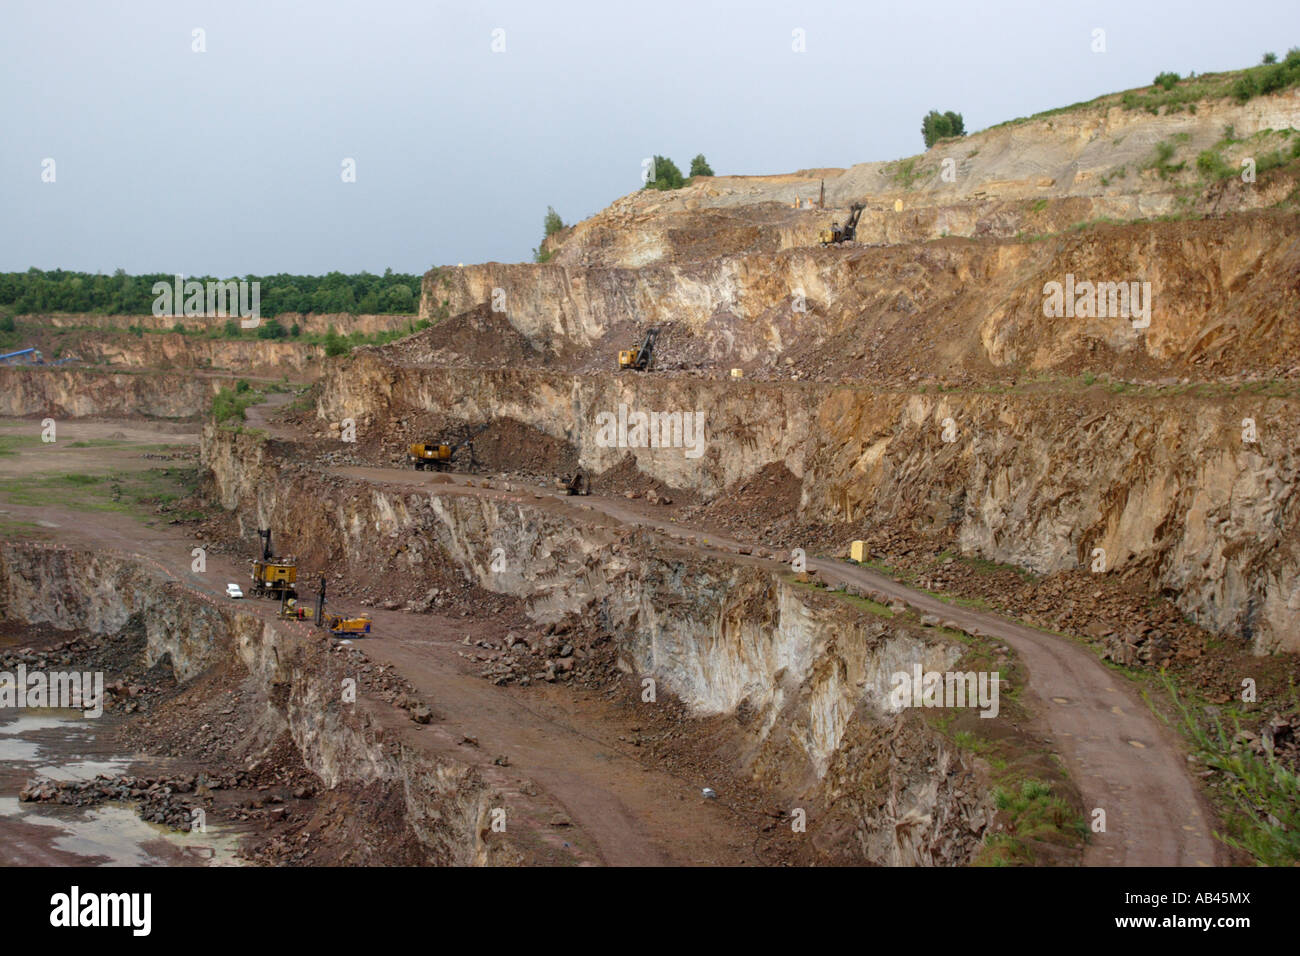 A quarry southern poland stock photo royalty free image for Landscape rock quarry alberta